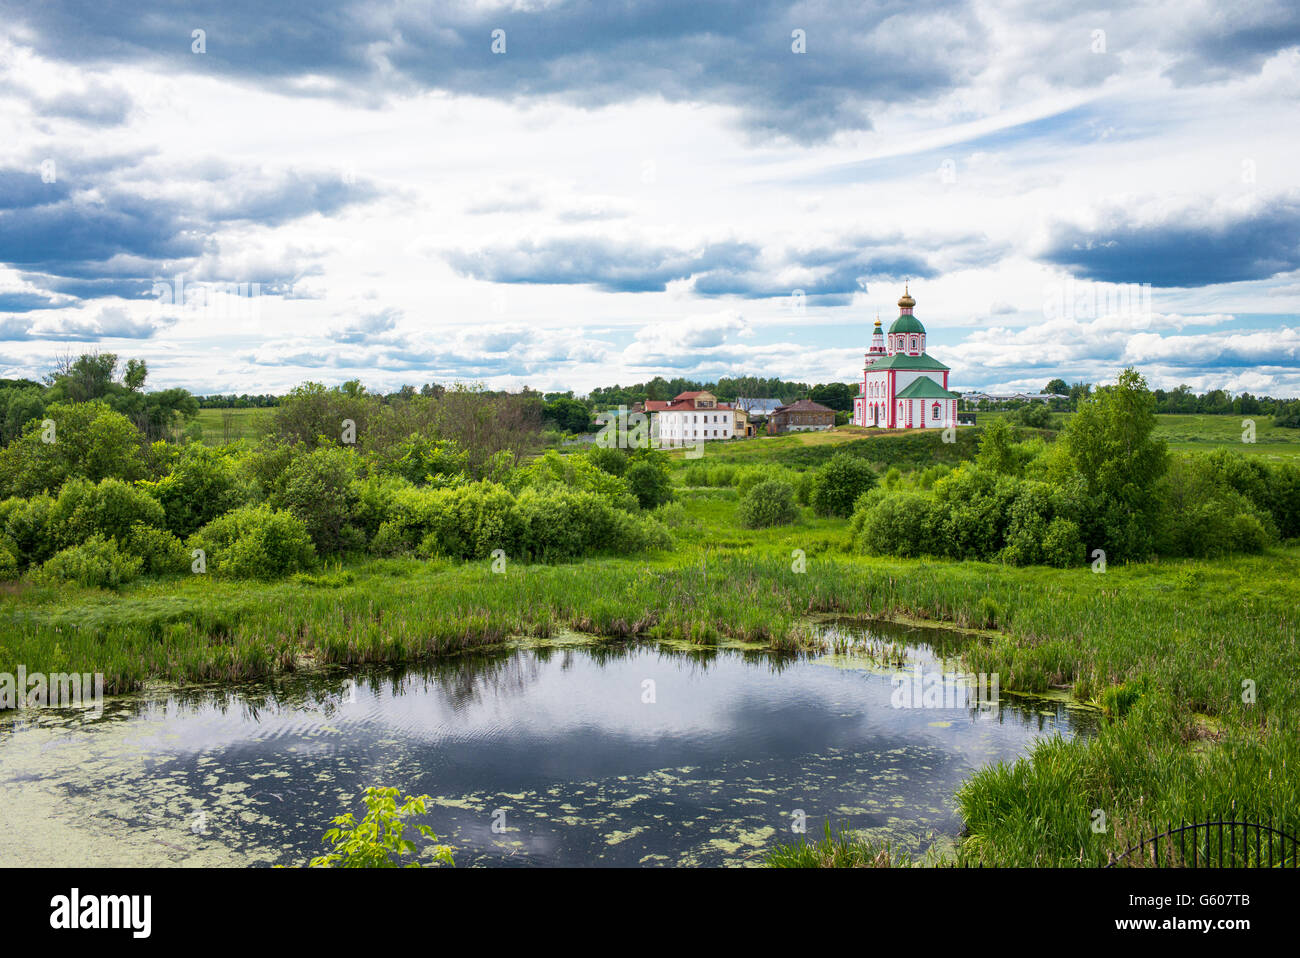 Russia, Suzdal, landscape of the country - Stock Image